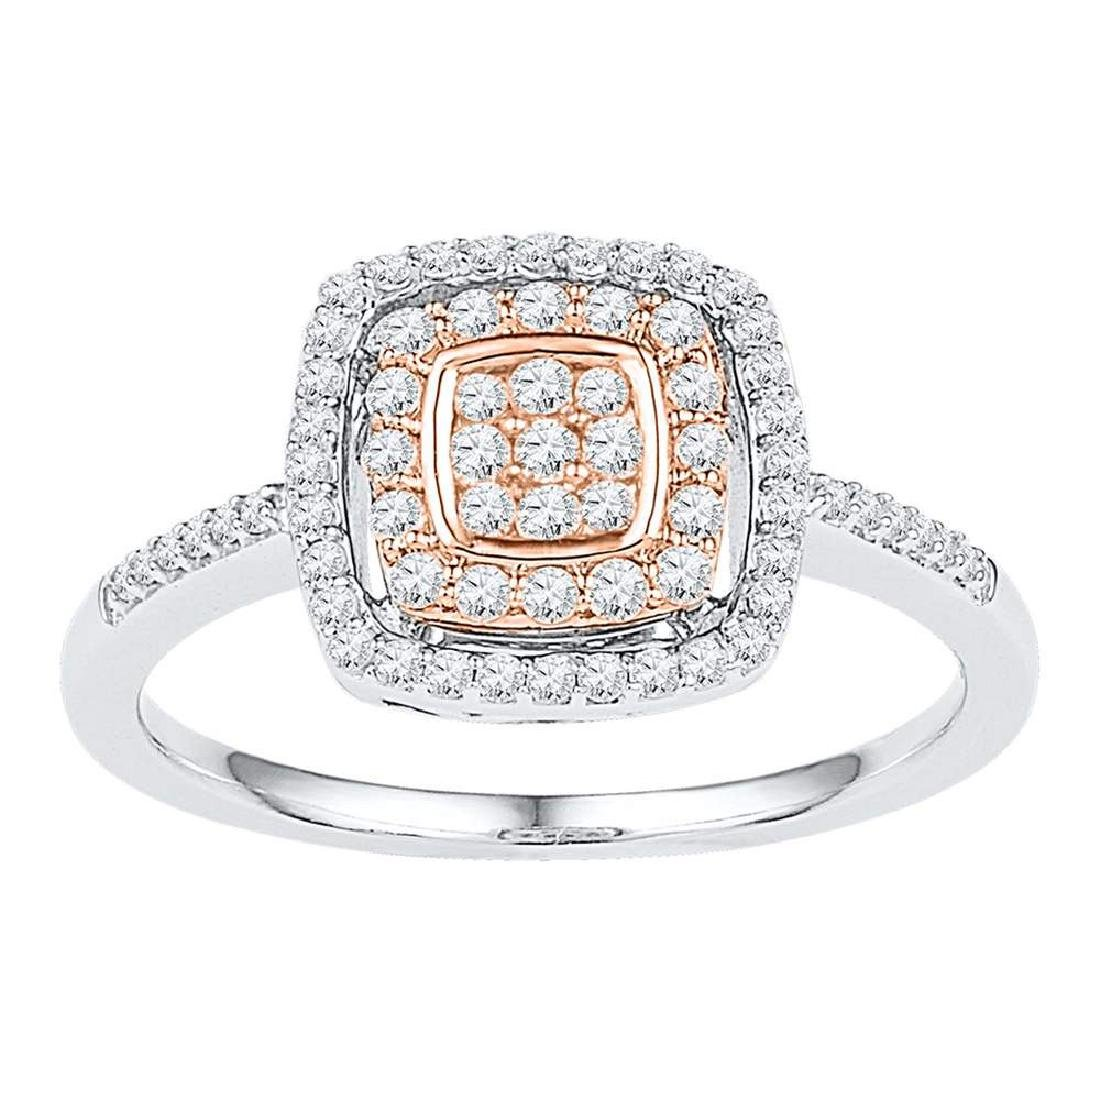 0.38 CTW Diamond Square Cluster Ring 10KT Two-tone Gold